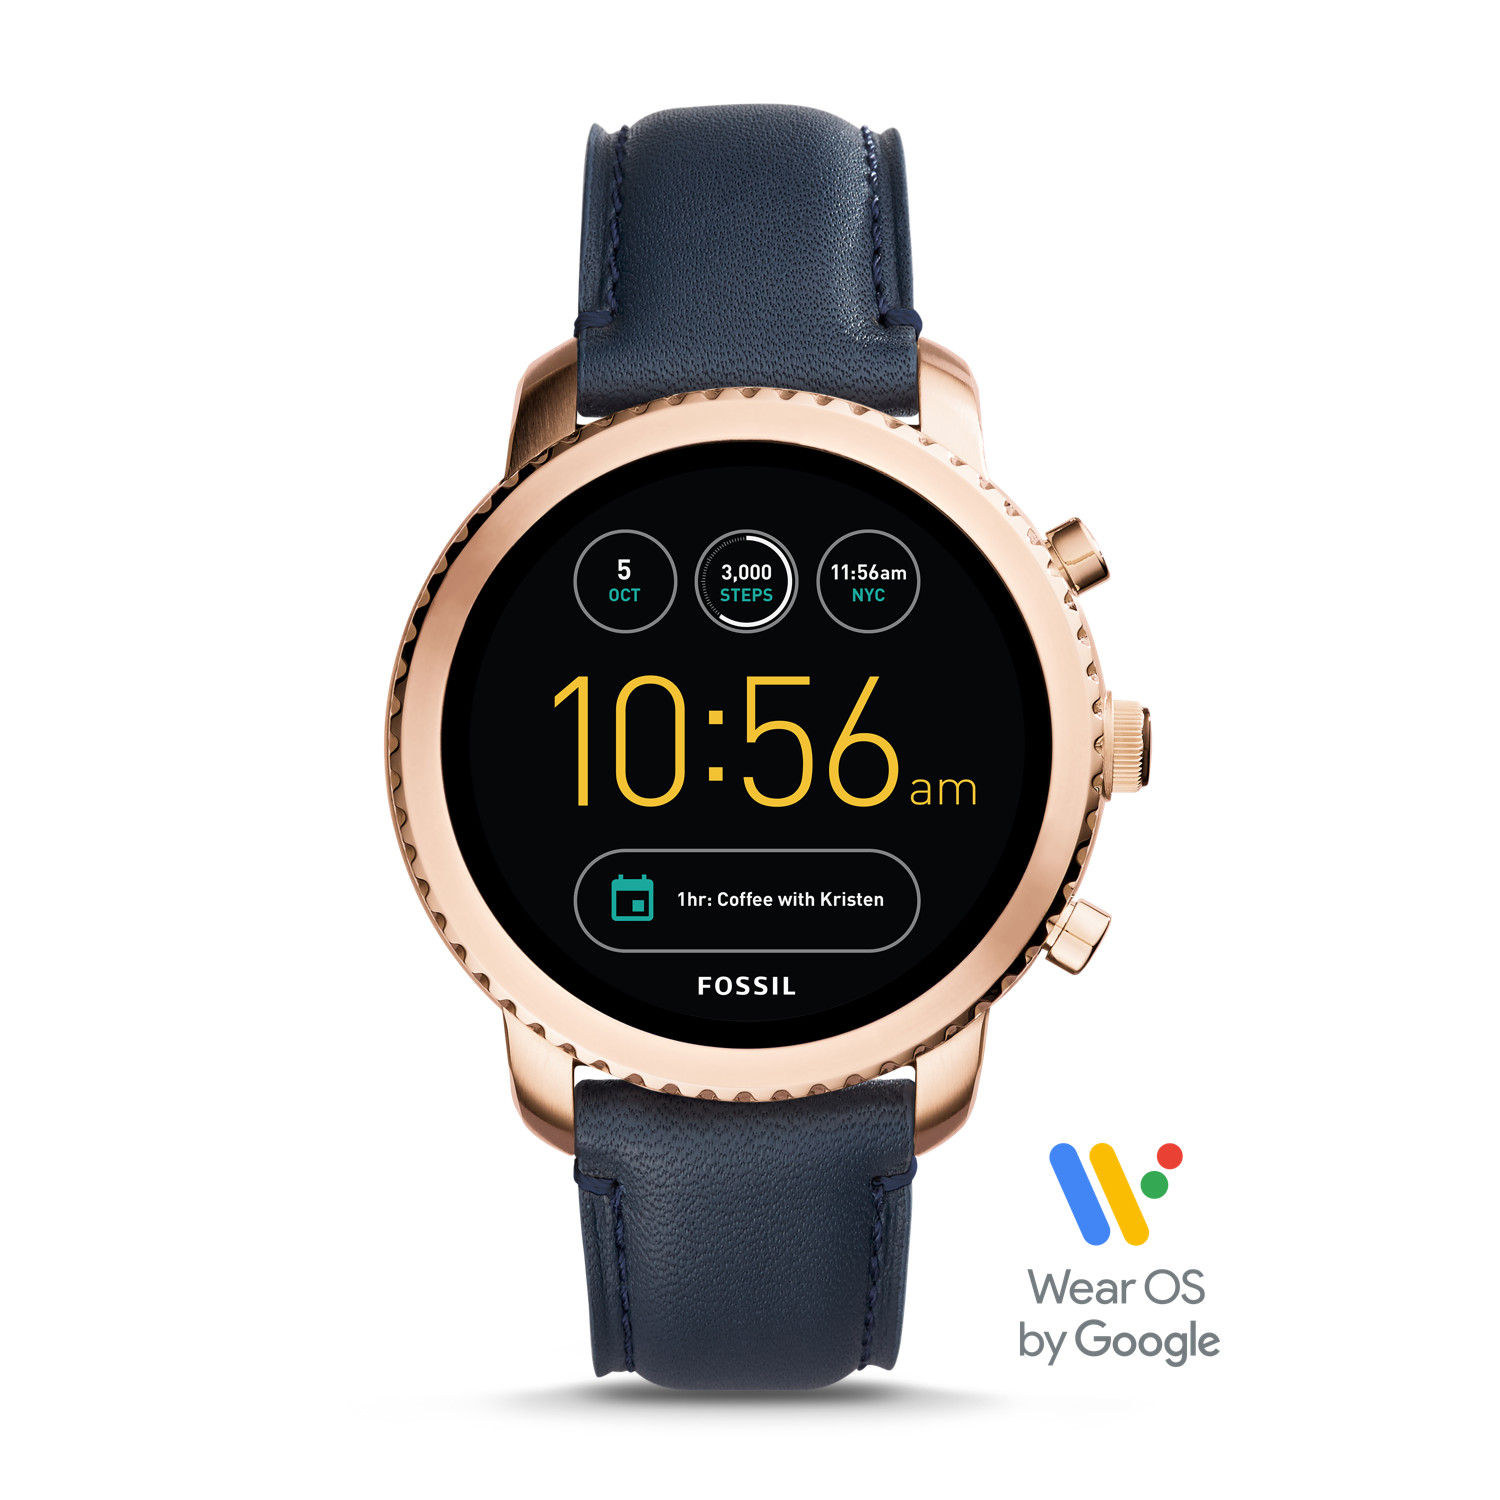 684e3e7447db Gen 3 Smartwatch - Explorist Navy Leather - Fossil